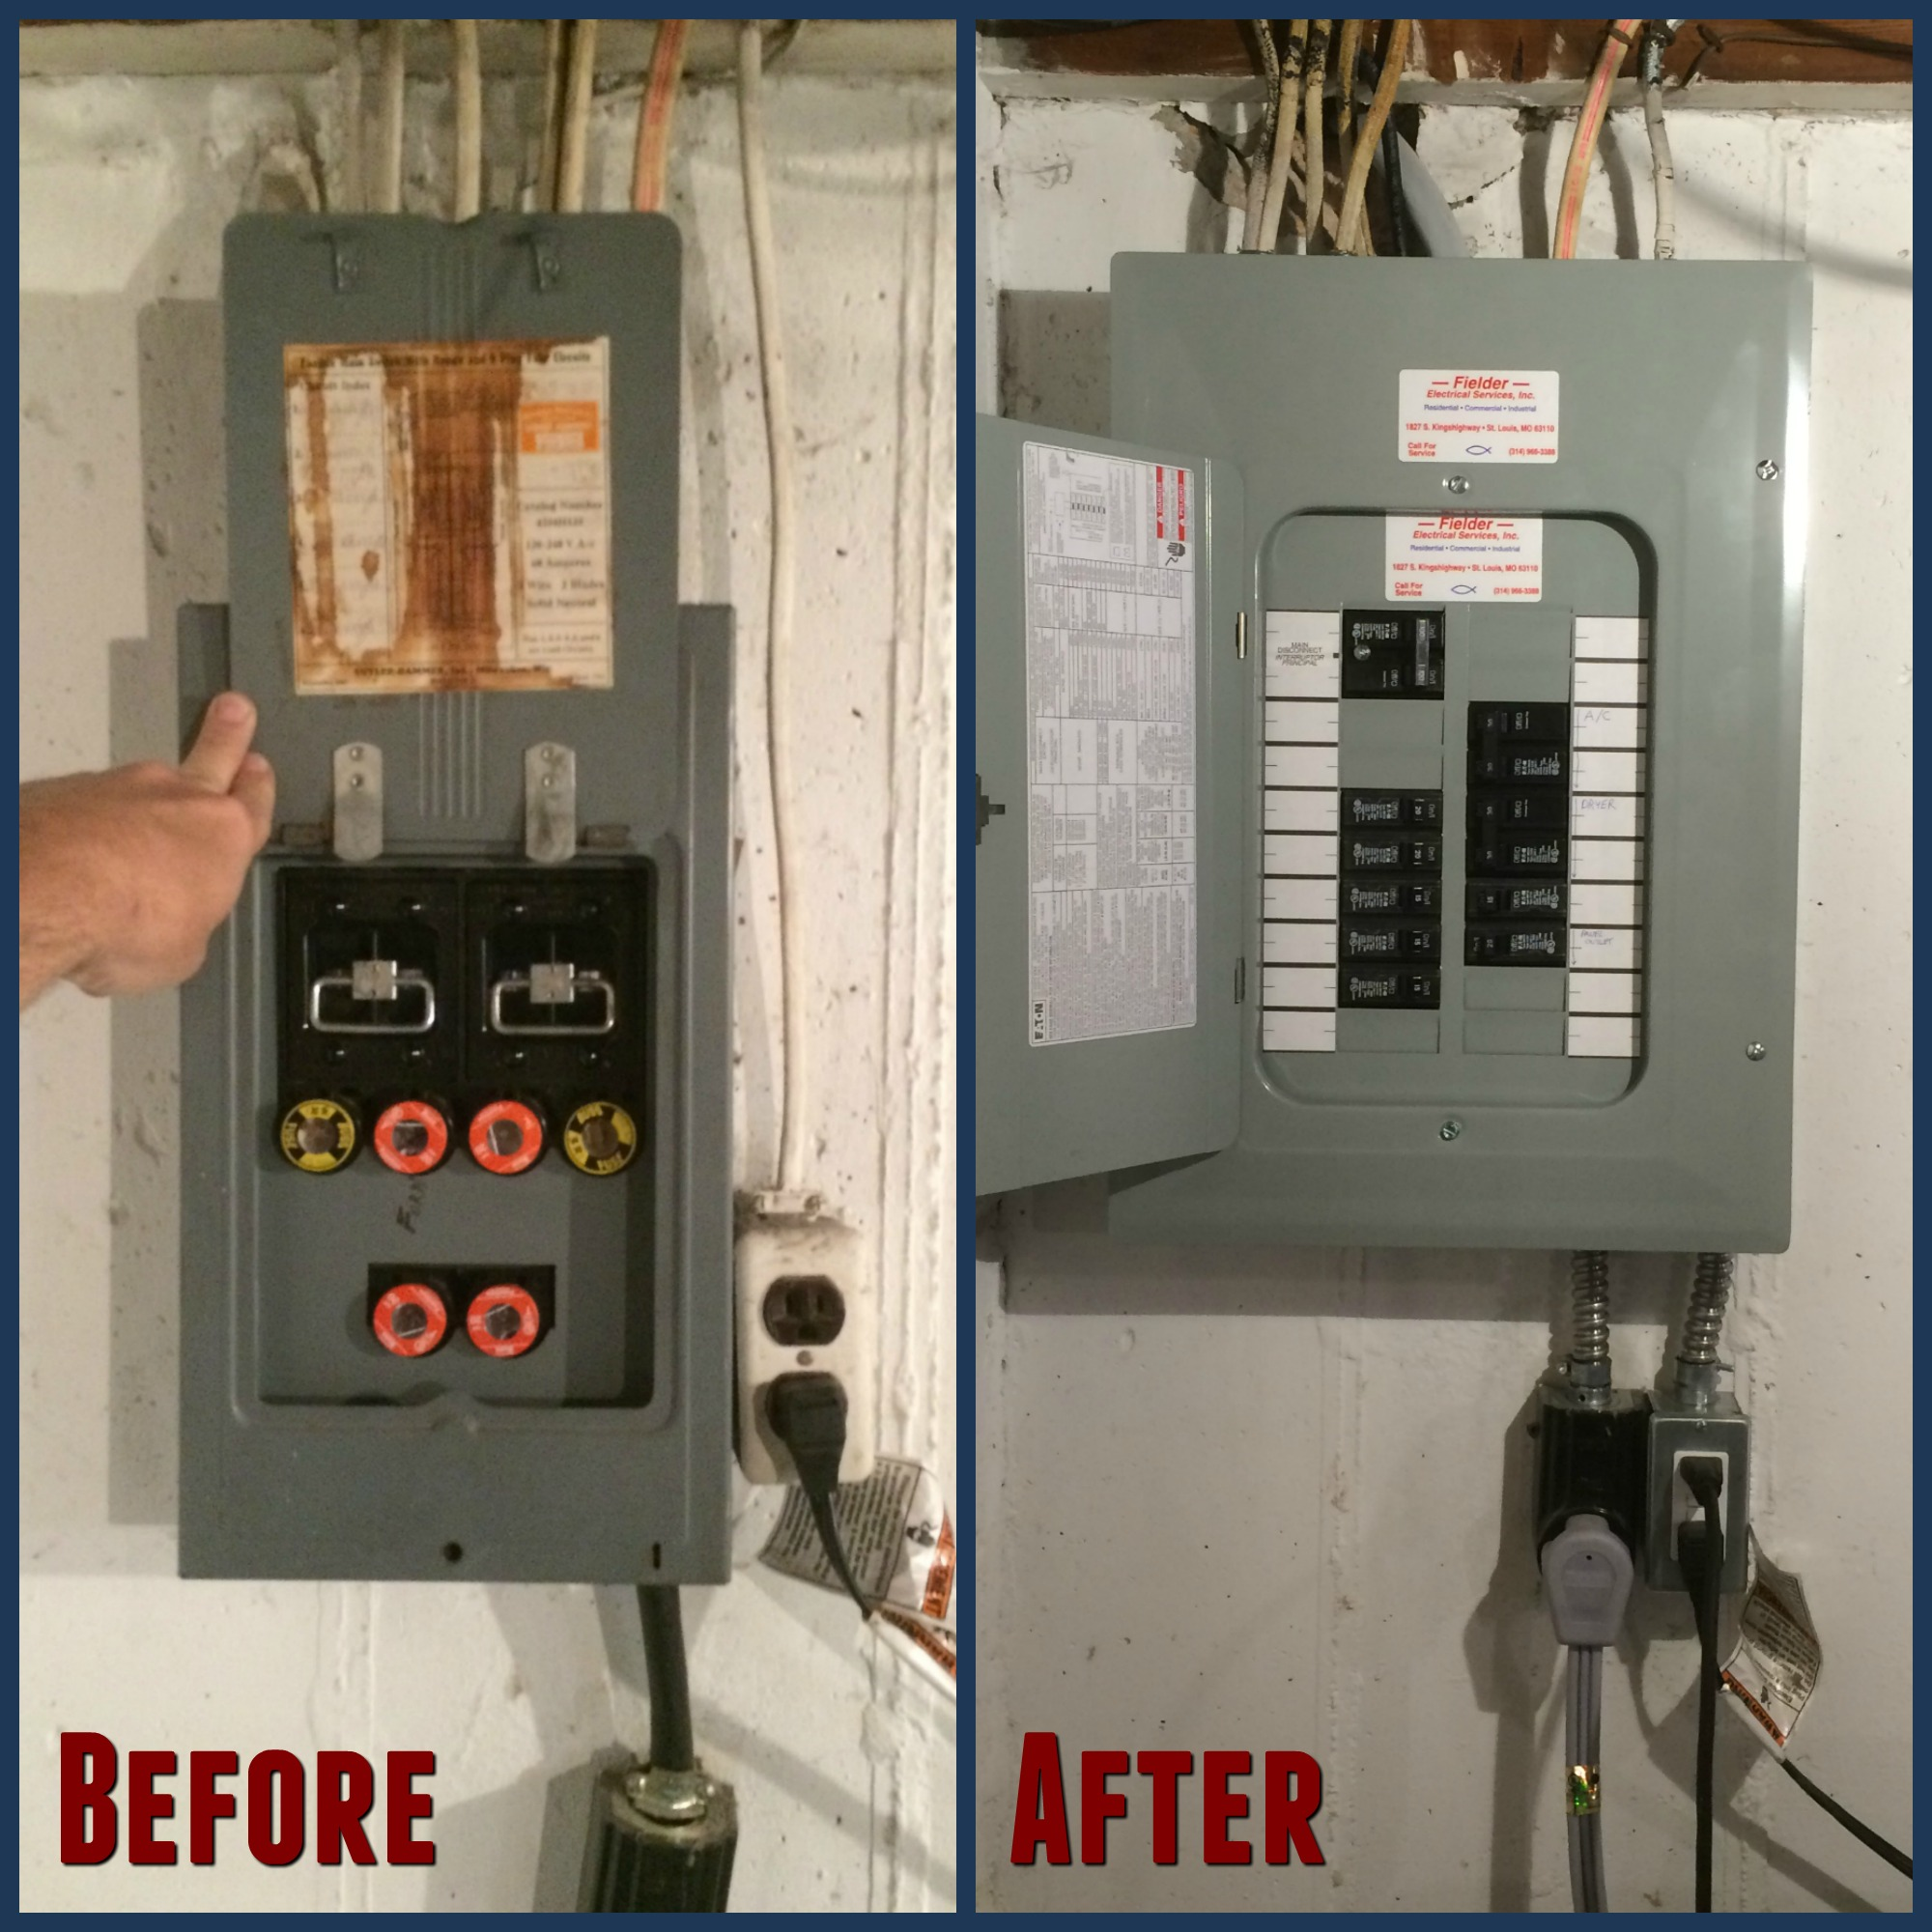 Fuse box replaced with electrical panel replace fuse box with breaker box fuses for circuit panel \u2022 wiring how to replace a fuse in a fuse box at bakdesigns.co